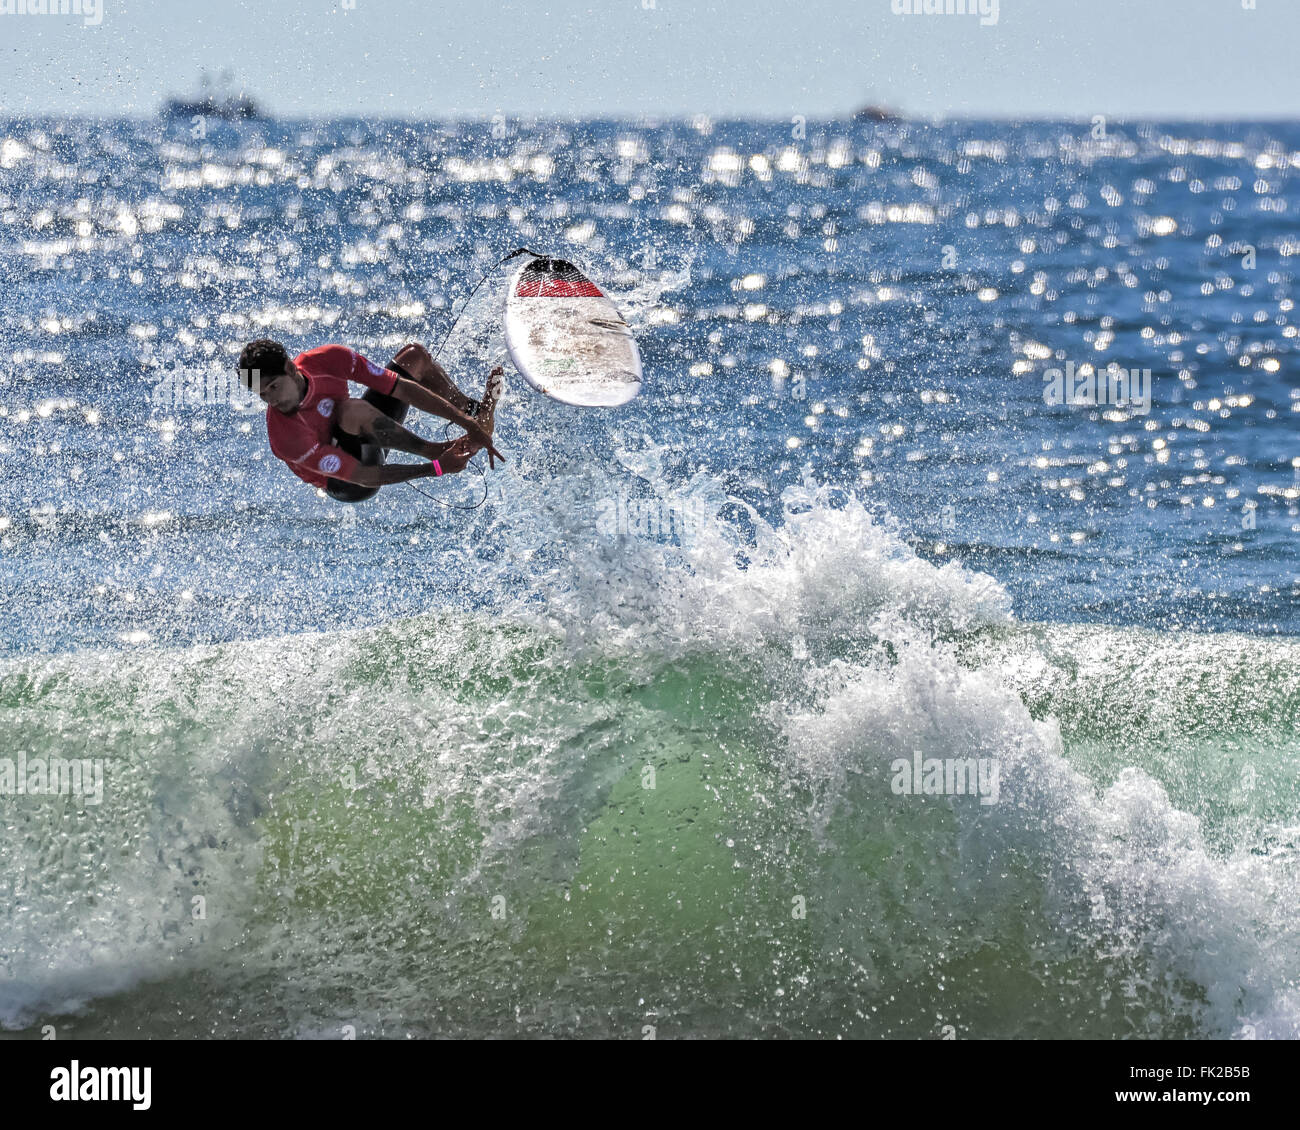 Sydney, Australia. 06th Mar, 2016. Professional surfer Heitor Alves (BRA) rides a wave during the quarter finals - Stock Image